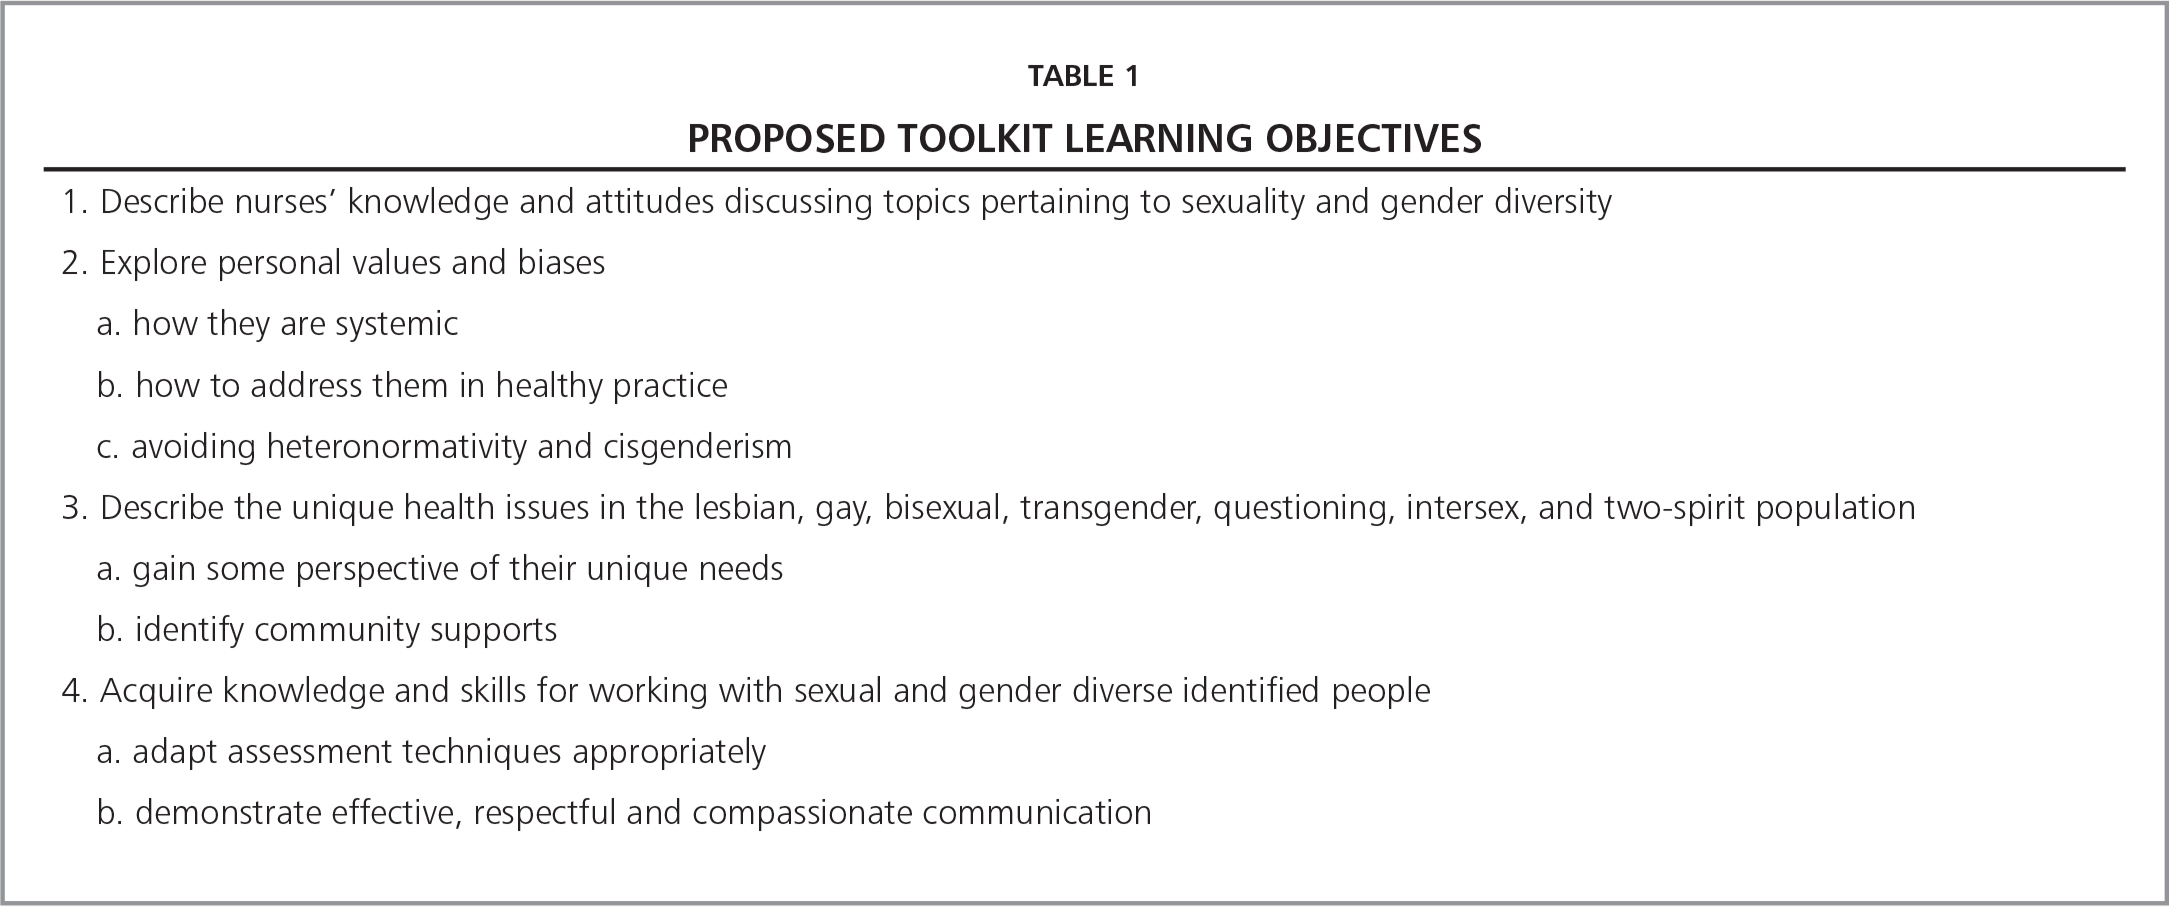 Proposed Toolkit Learning Objectives